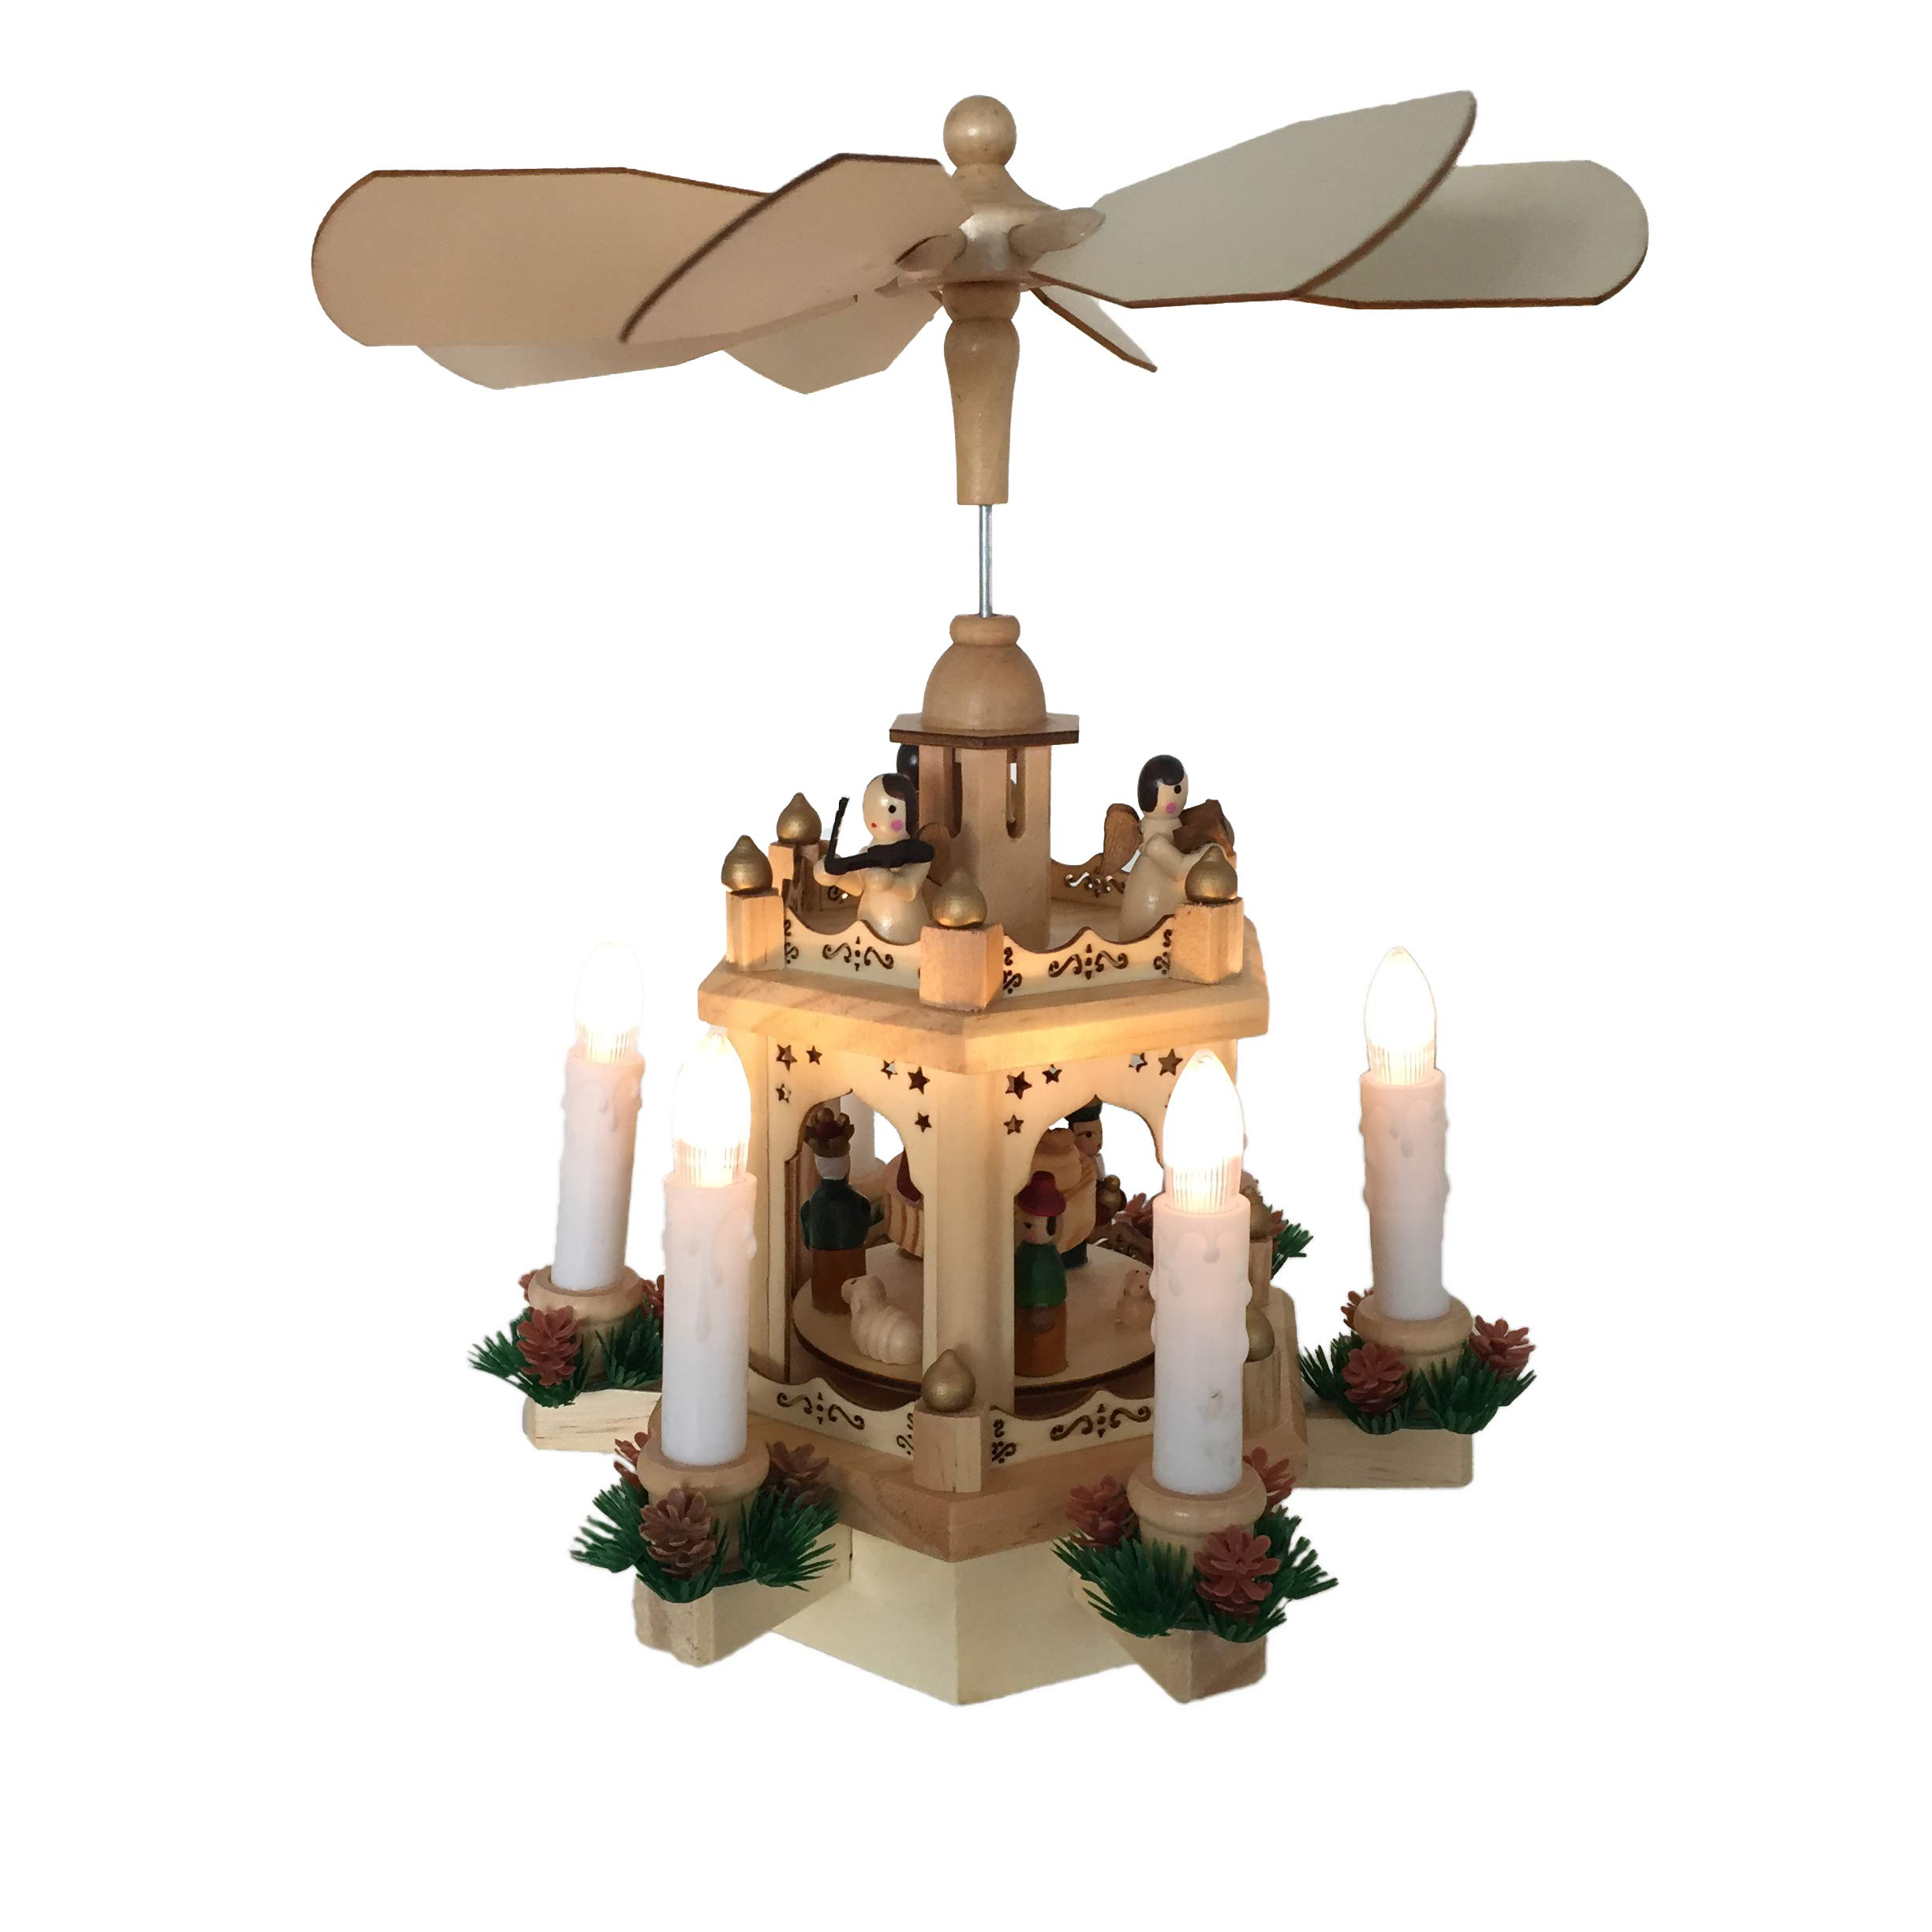 Pioneer-Effort Christmas Decoration Pyramid 11.5Inches - 2 Tier Hand-Painted Nativity Figurines with 6 Candle Led Lights Driving by AAA Batteries